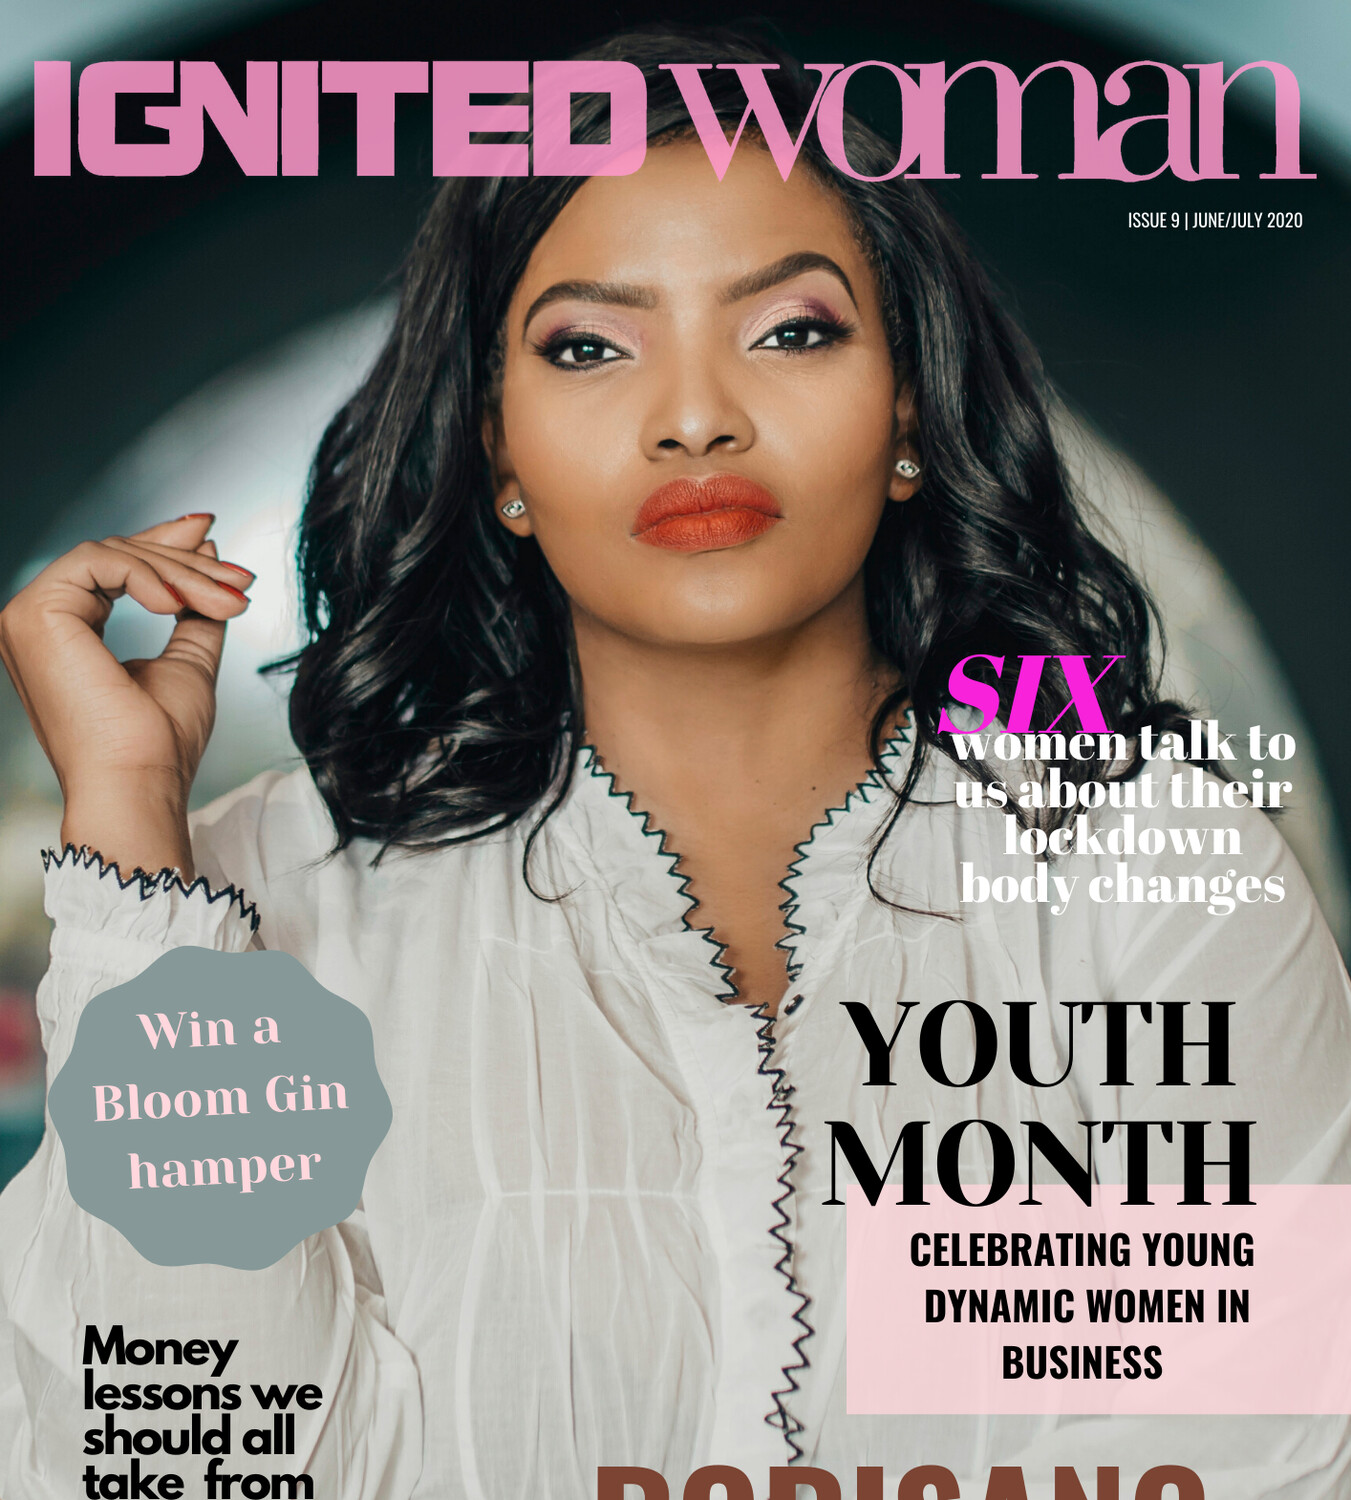 Ignited Woman Issue 9